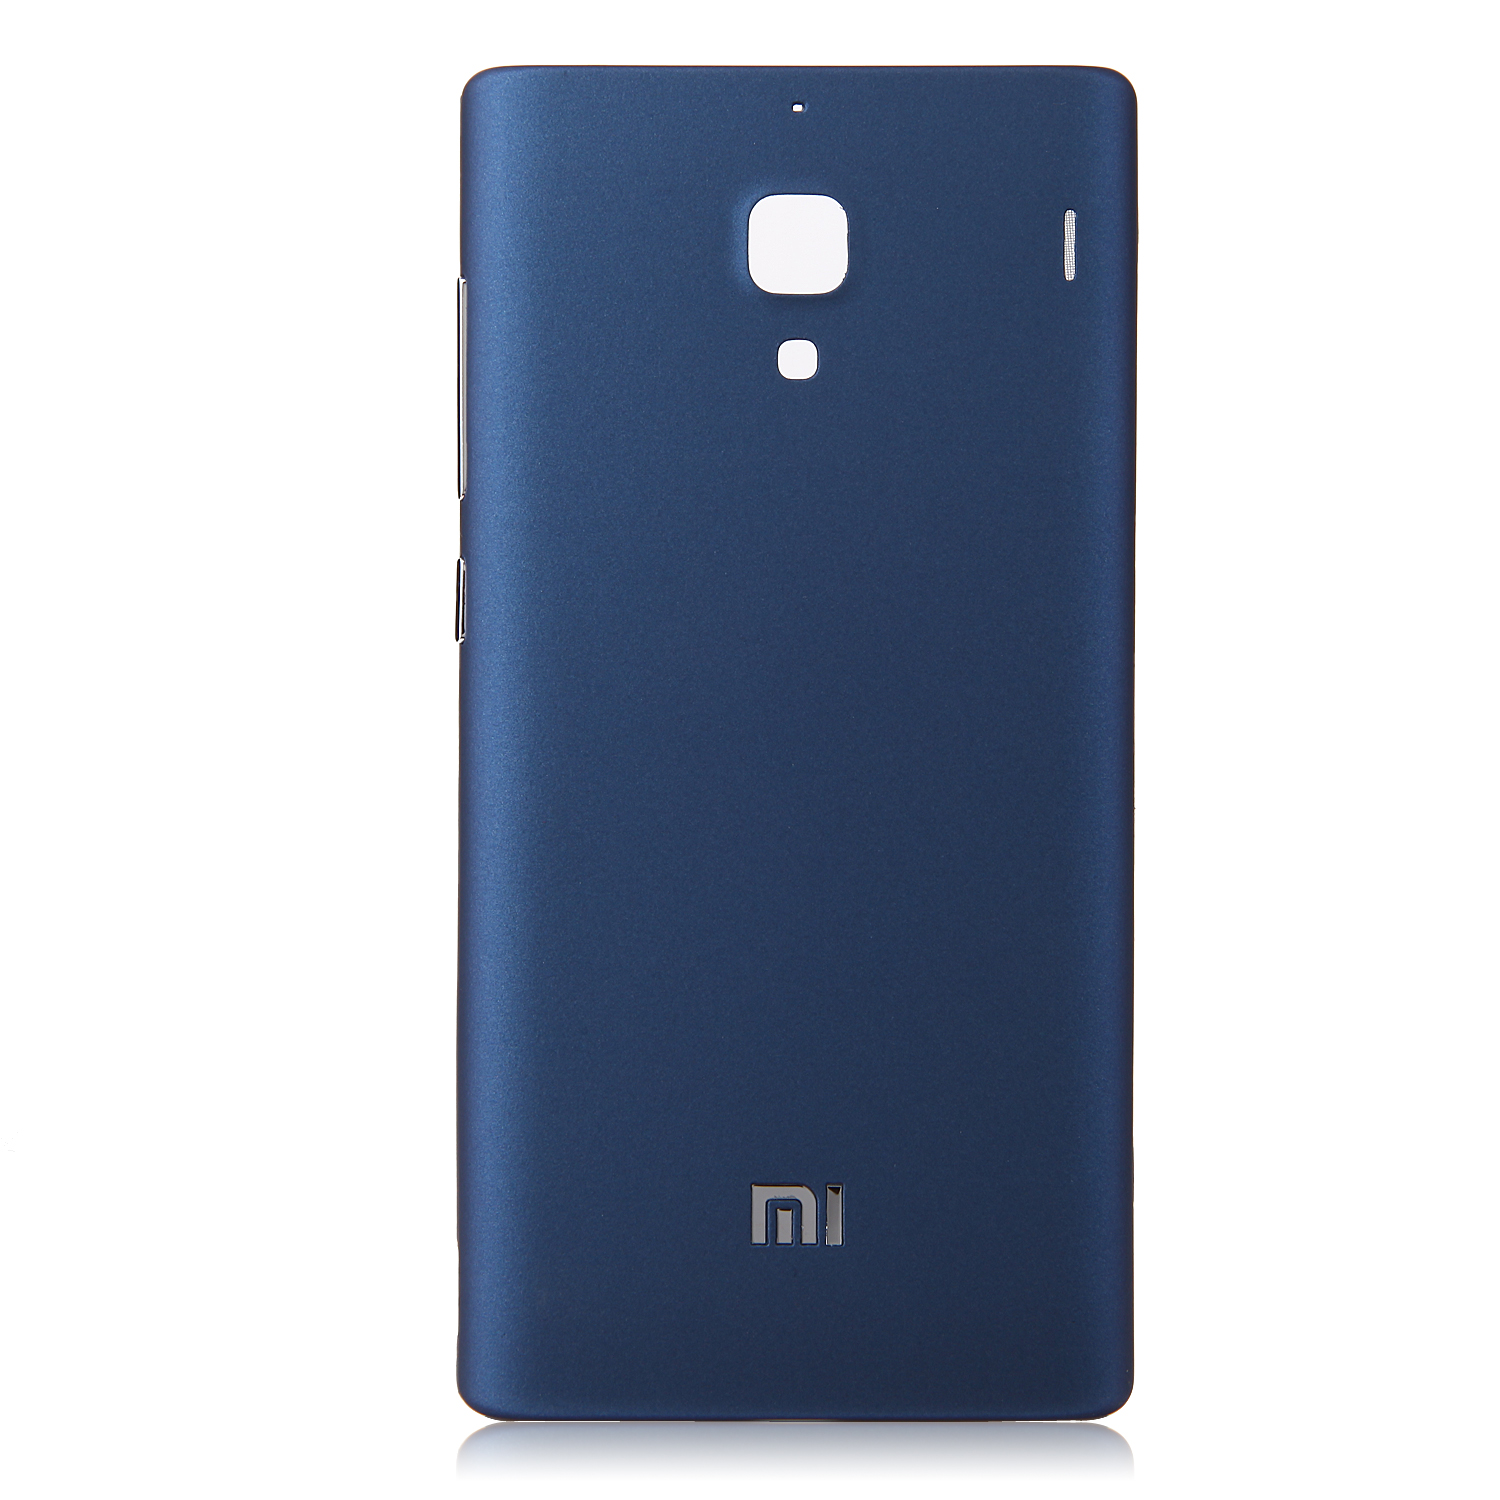 Replacement Battery Cover Frosted Case for XIAOMI Redmi 1S Smartphone Dark Blue